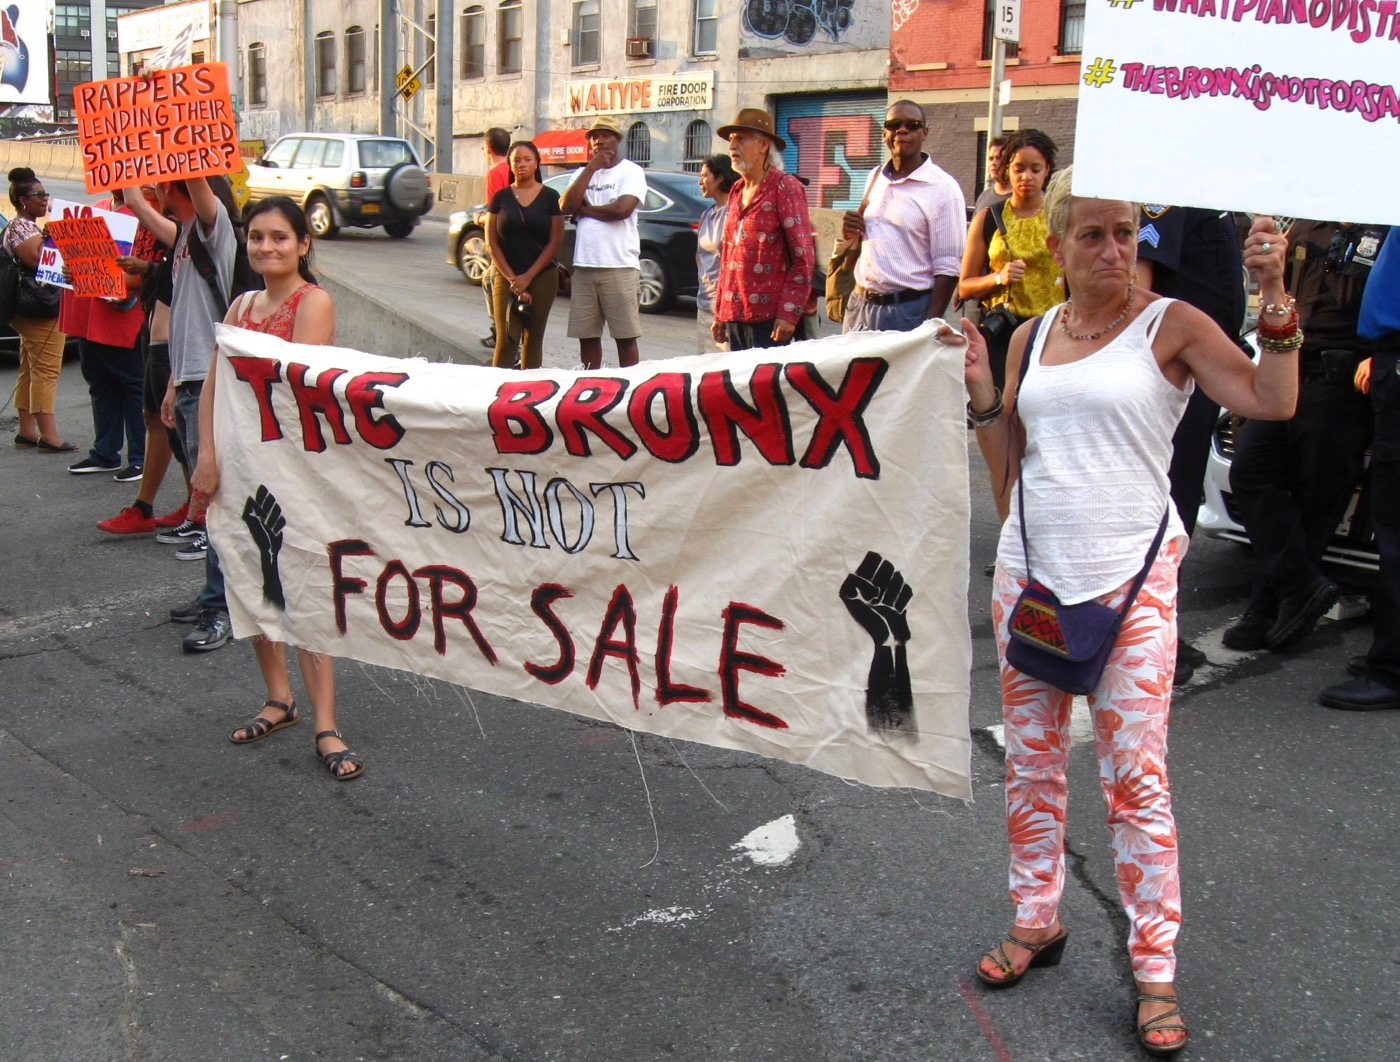 Protestors at the No Commission art fair organized by Bronx Hip Hop Producer Swizz Beatz.